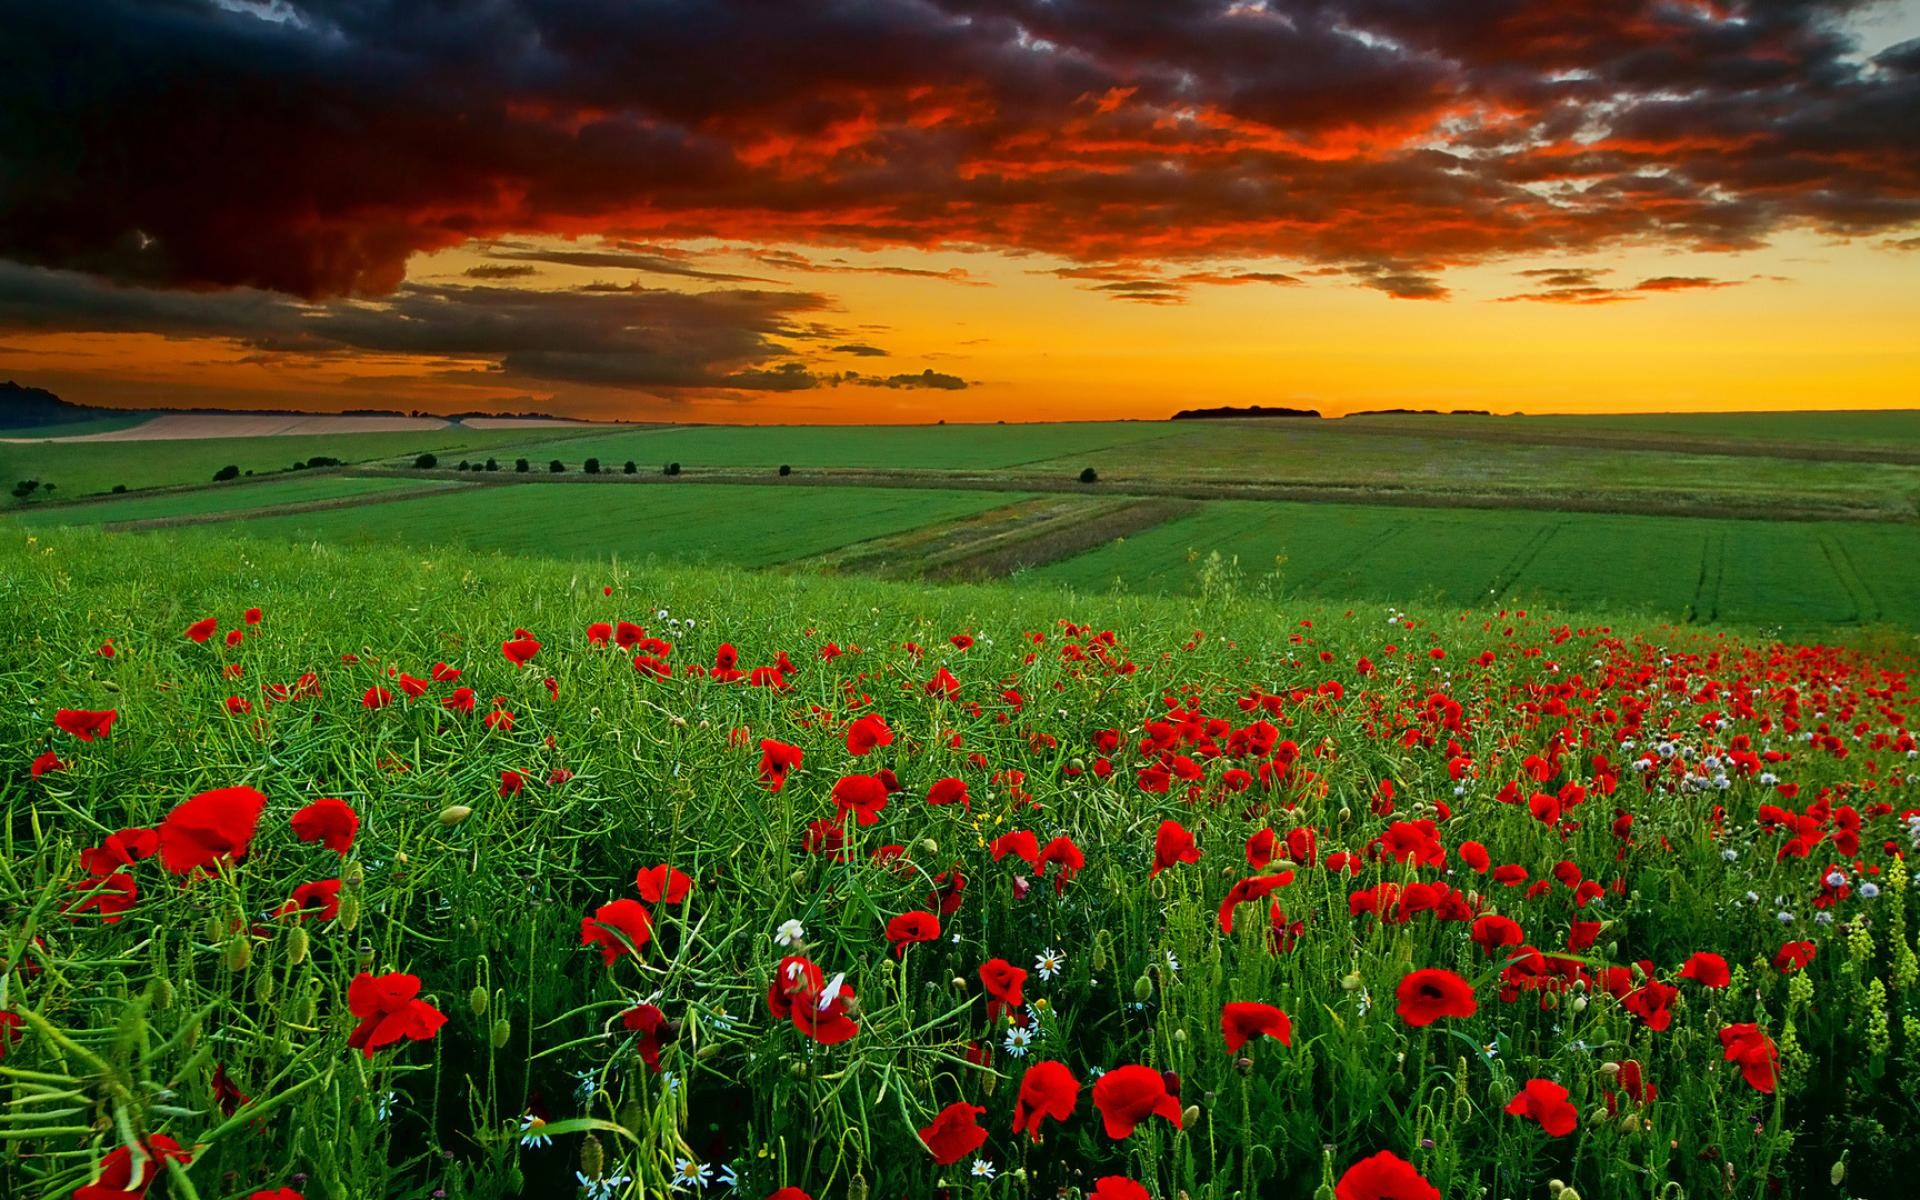 Scenery Wallpapers HD Pictures   One HD Wallpaper Pictures Backgrounds .